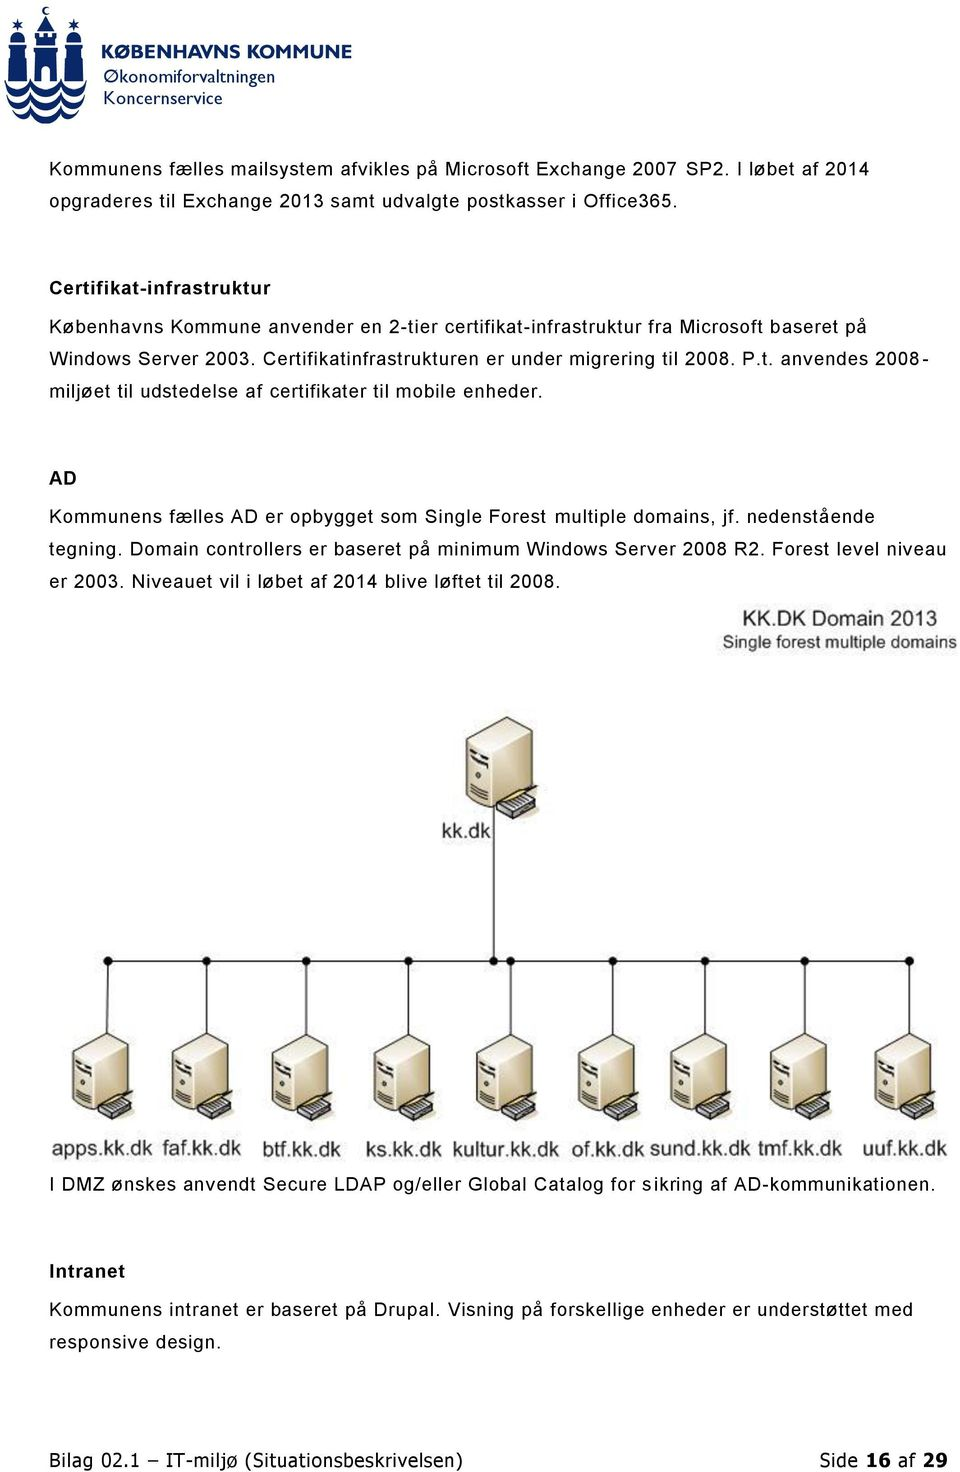 AD Kommunens fælles AD er opbygget som Single Forest multiple domains, jf. nedenstående tegning. Domain controllers er baseret på minimum Windows Server 2008 R2. Forest level niveau er 2003.